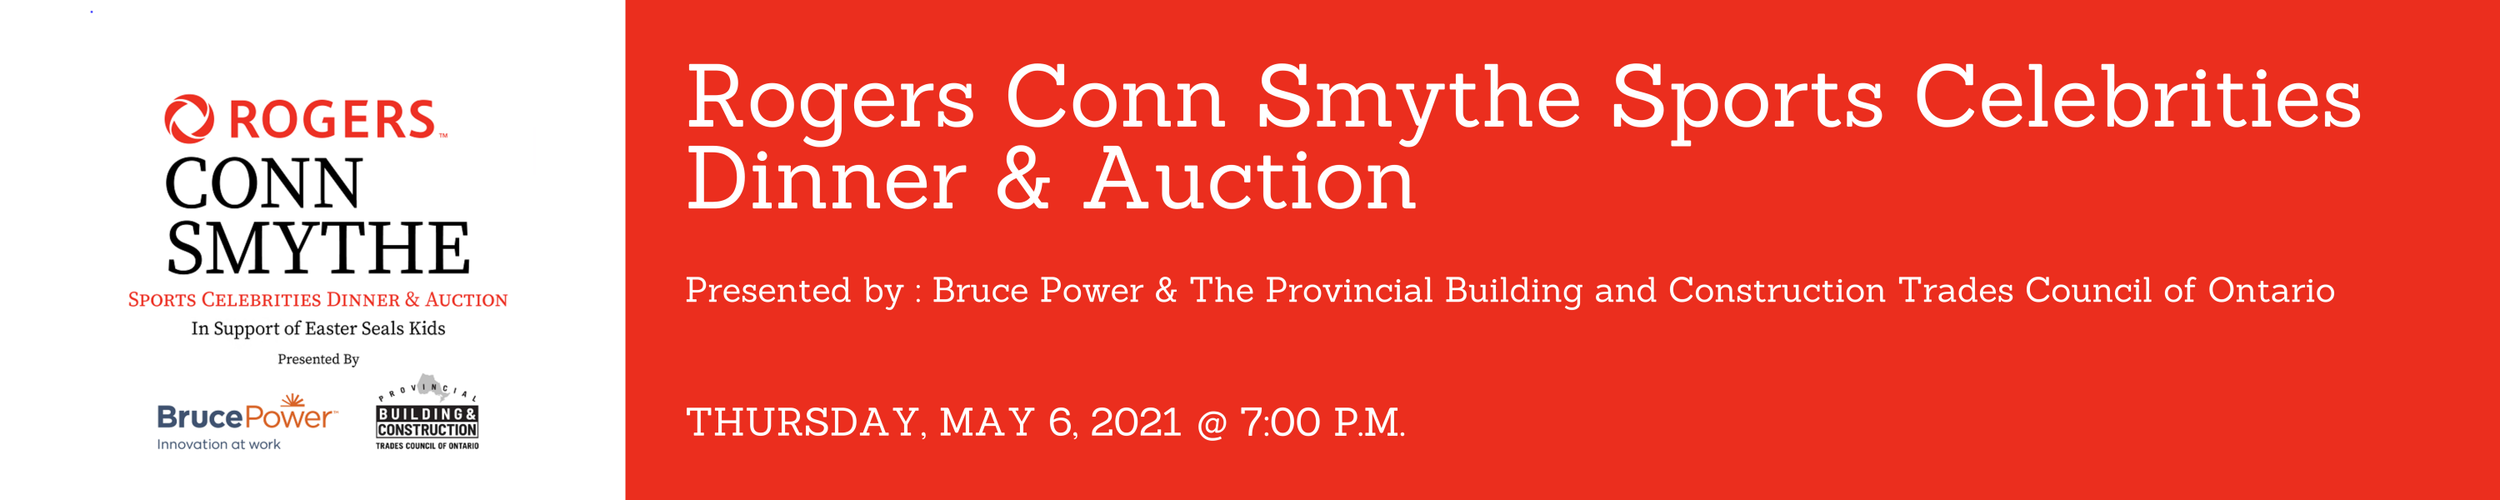 The Rogers Conn Smythe Sports Celebrities Dinner and Auction